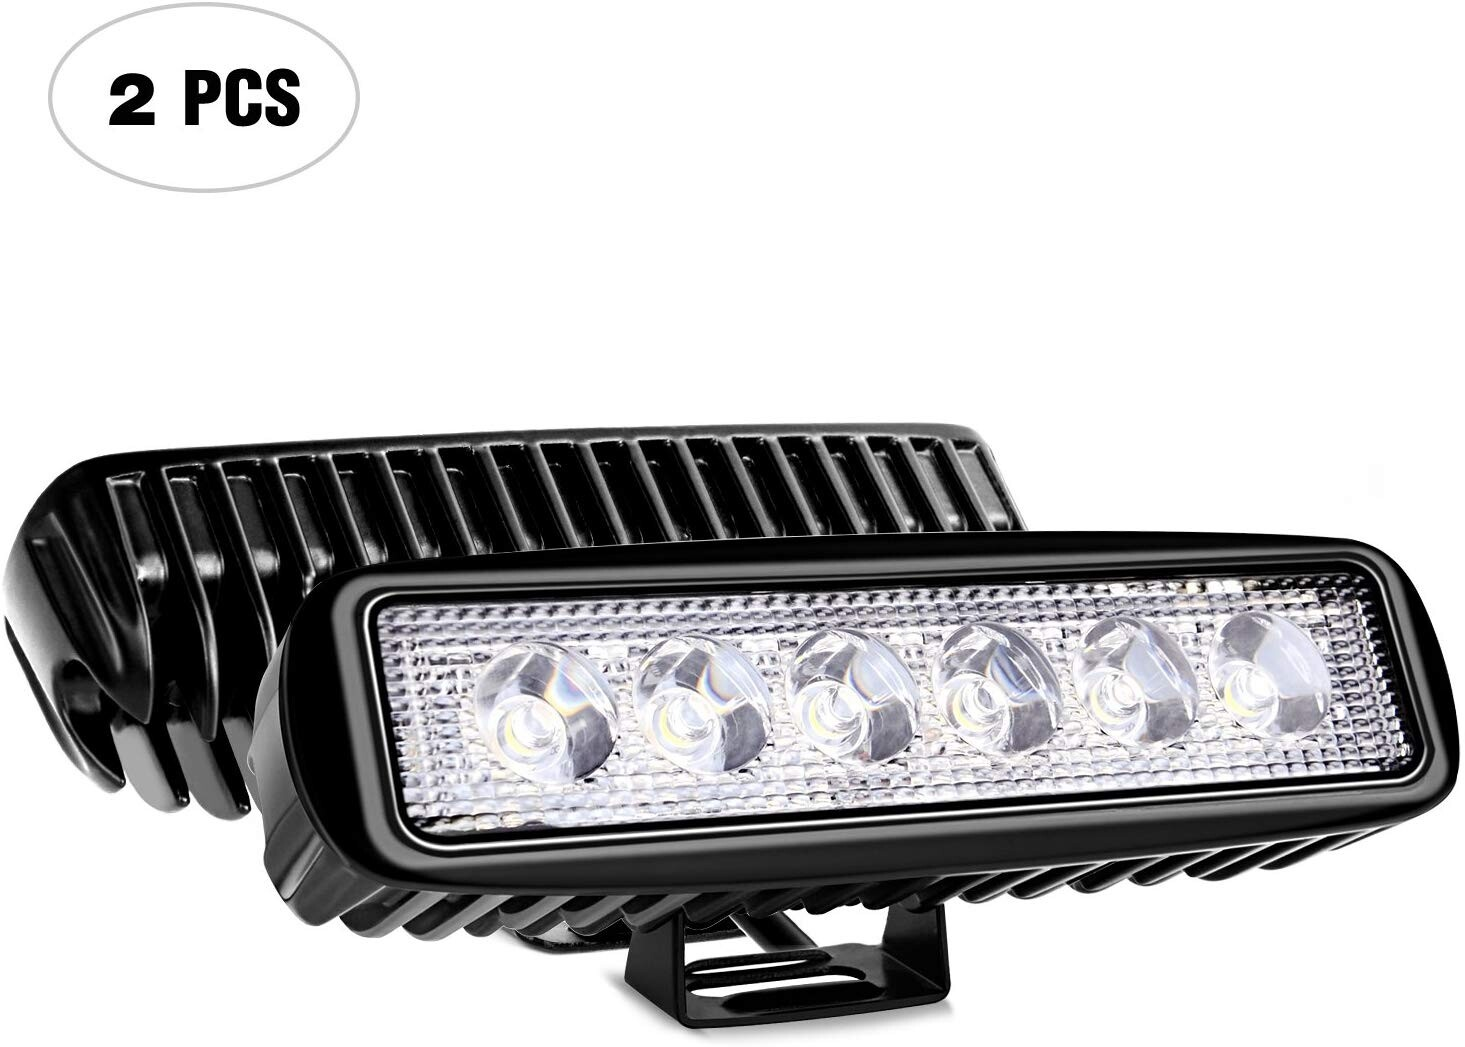 "LED Spot Light 18W Dimension 7"" x 3"" Pour Voiture (Paire) Spotlight"